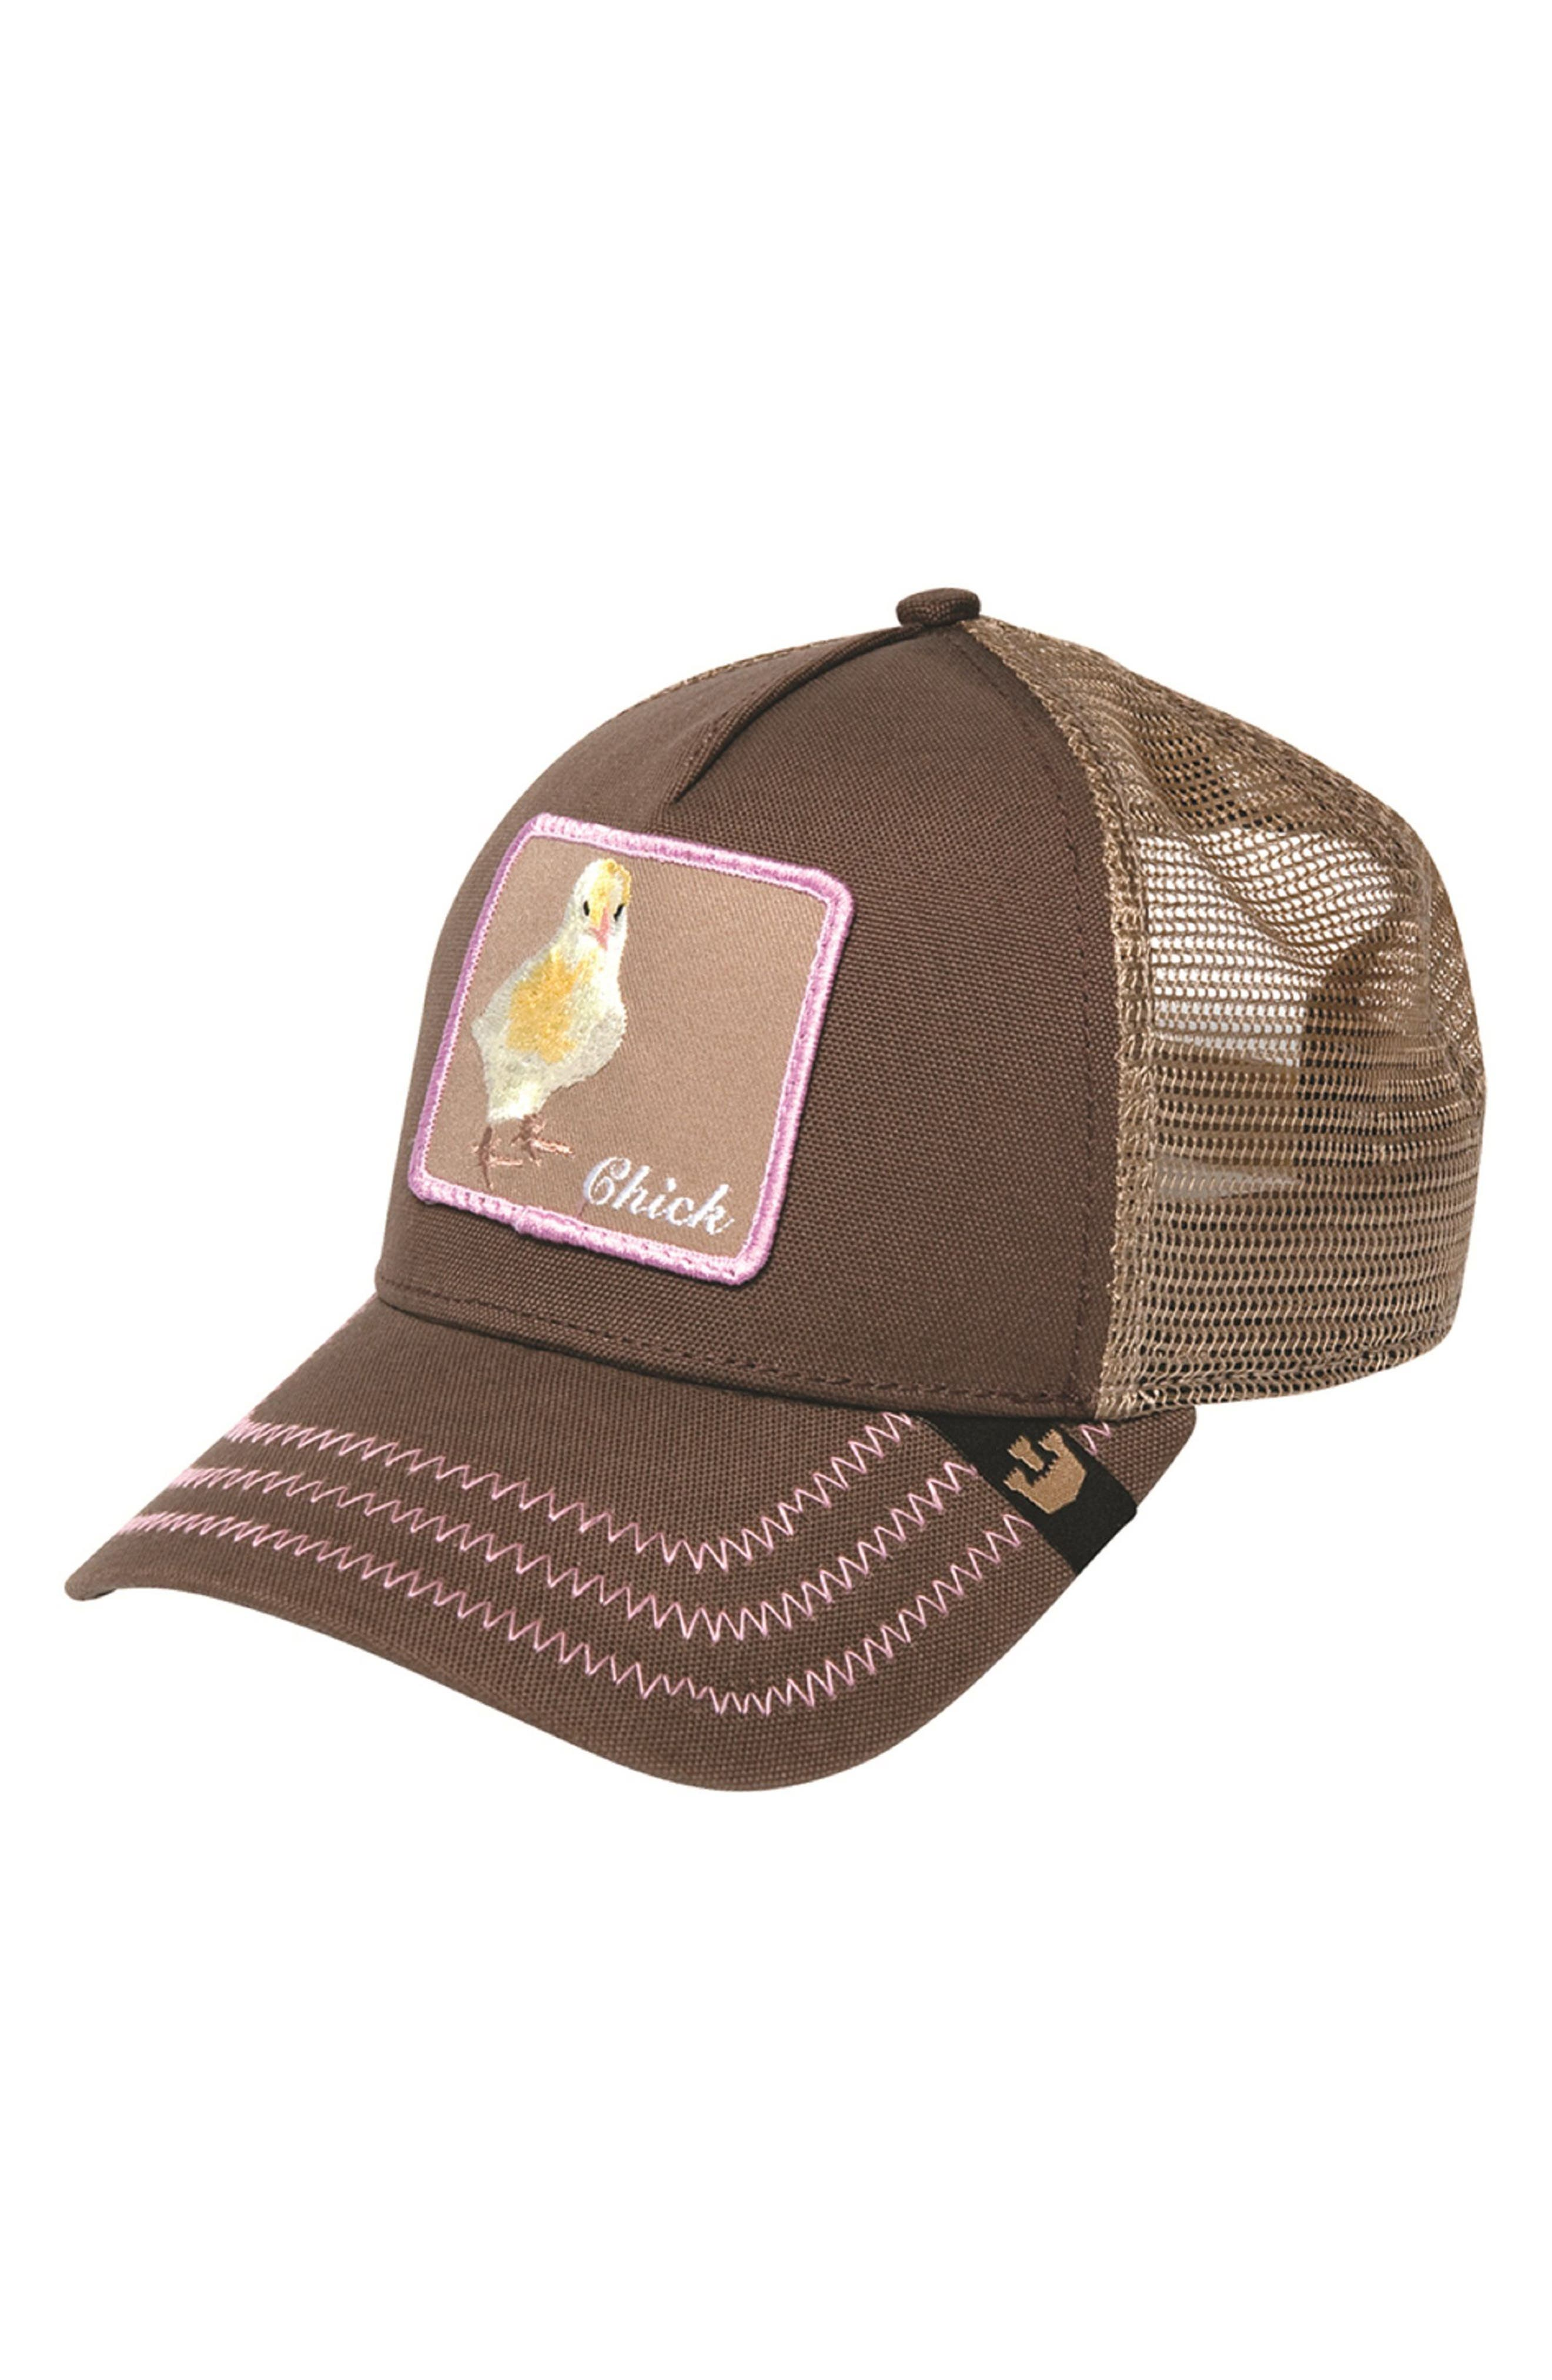 Chicky Boom Trucker Hat,                             Main thumbnail 1, color,                             201